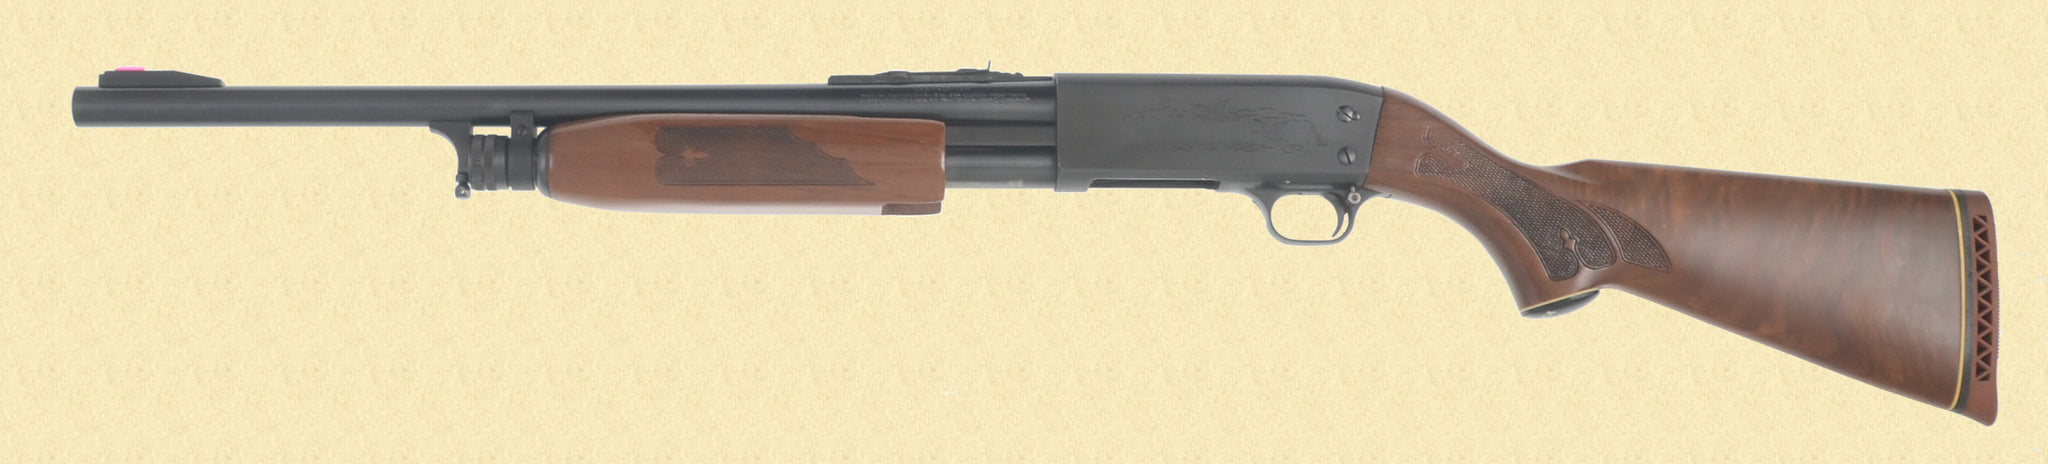 ITHACA 37 DEERSLAYER